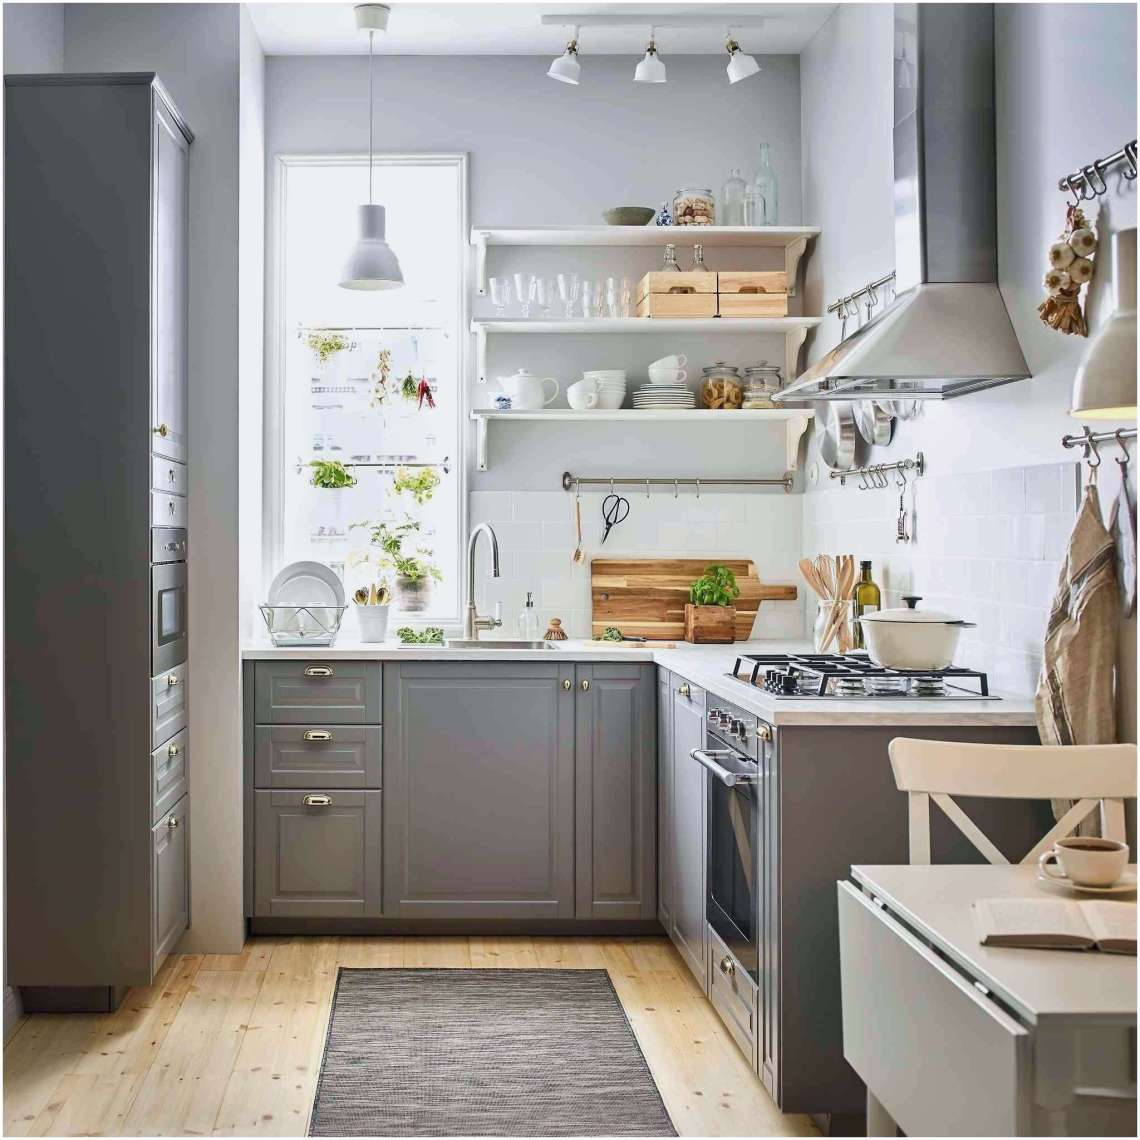 Home Staging Cuisine Comment Renover Sa Cuisine A Moindre Cout